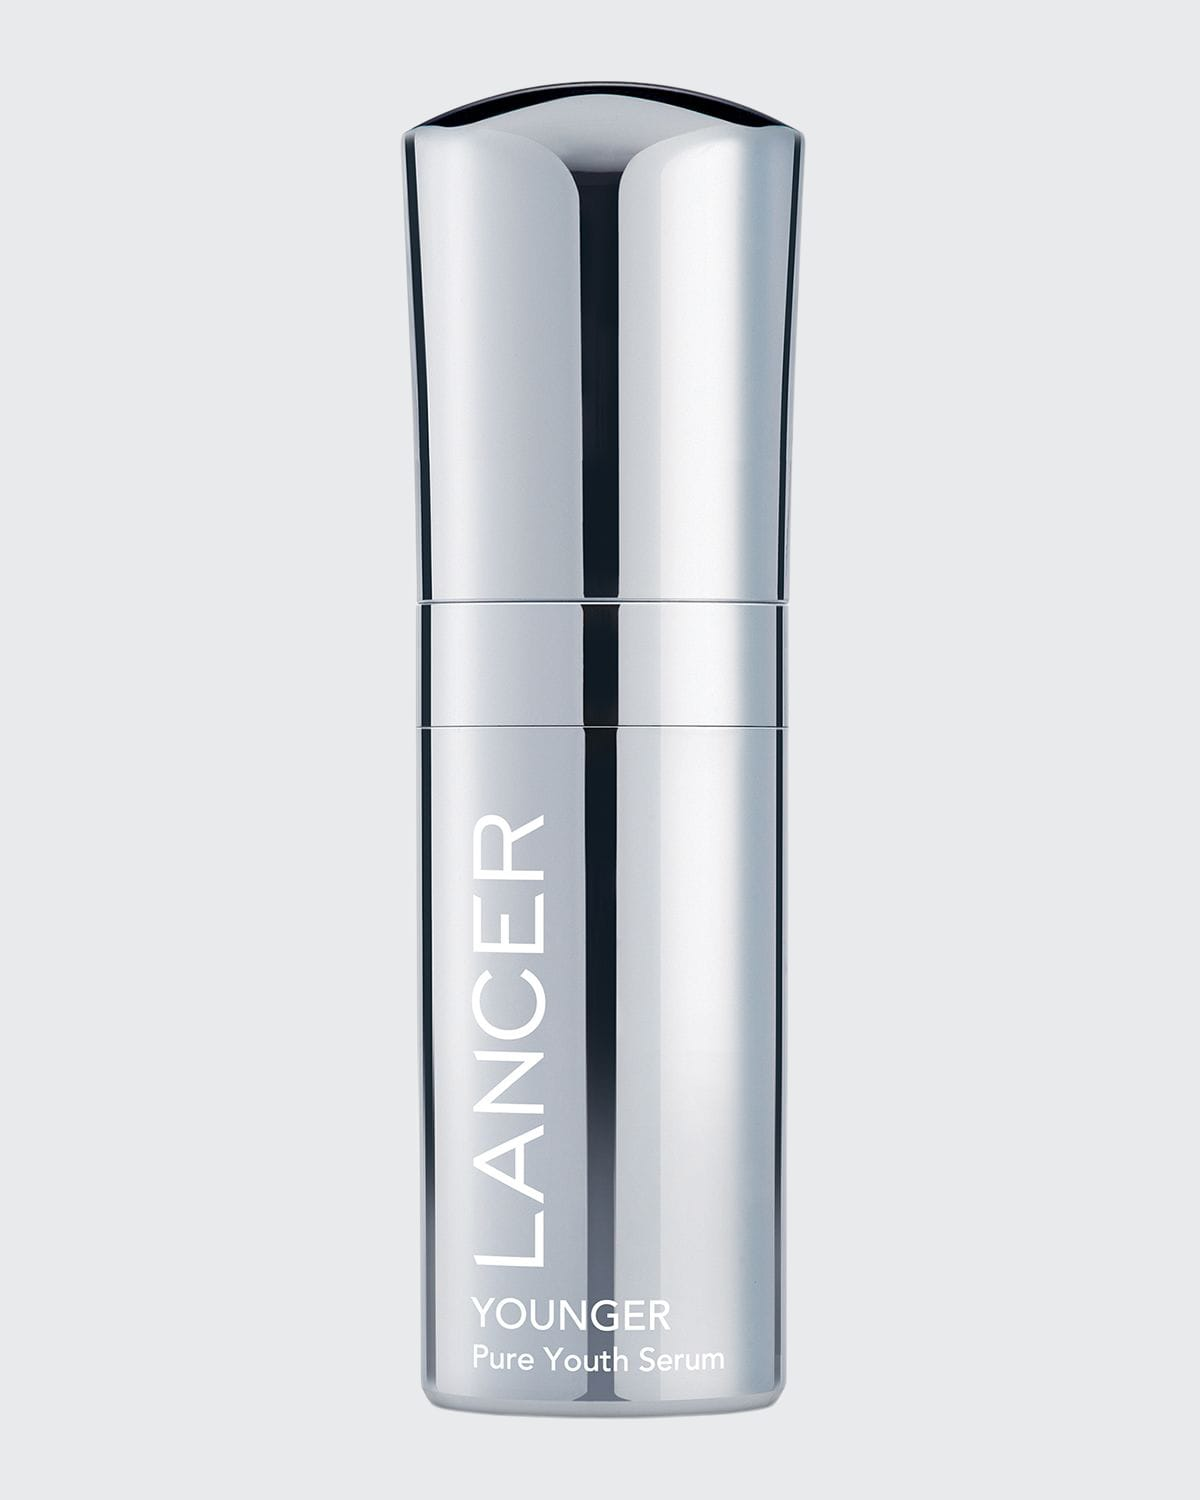 Younger: Pure Youth Serum